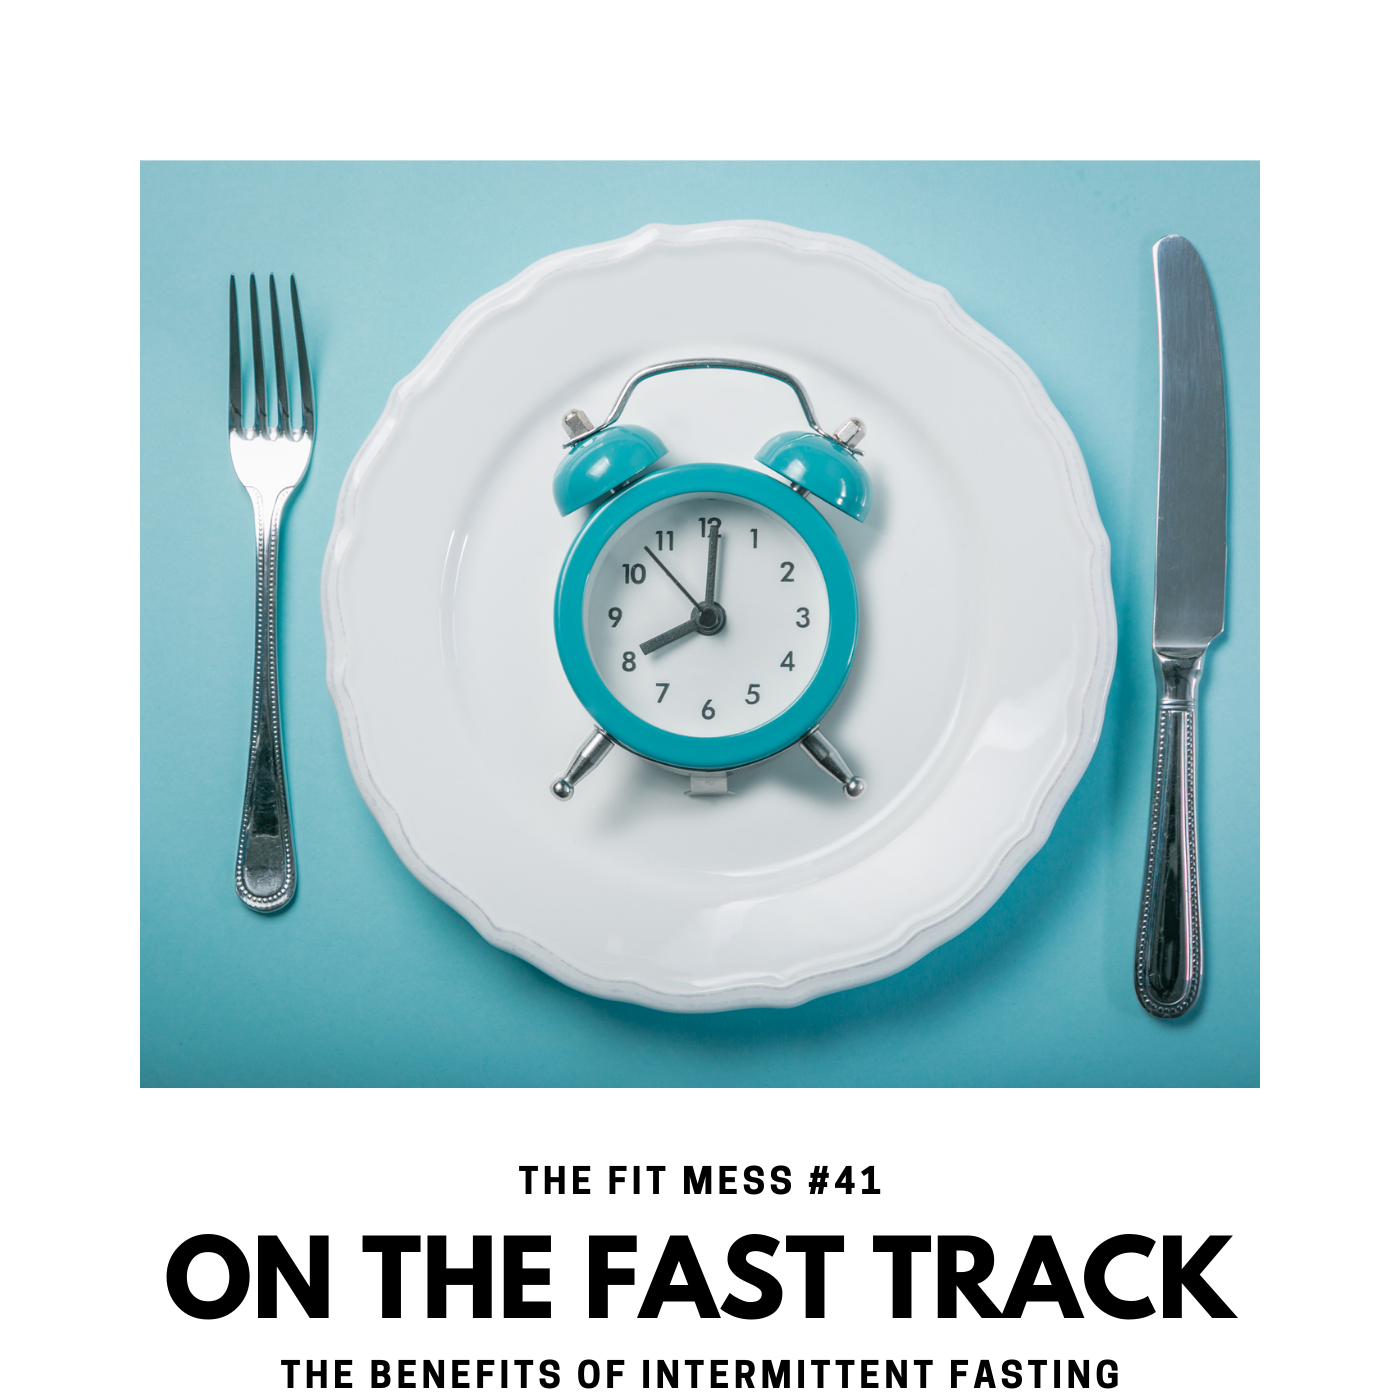 On the Fast Track